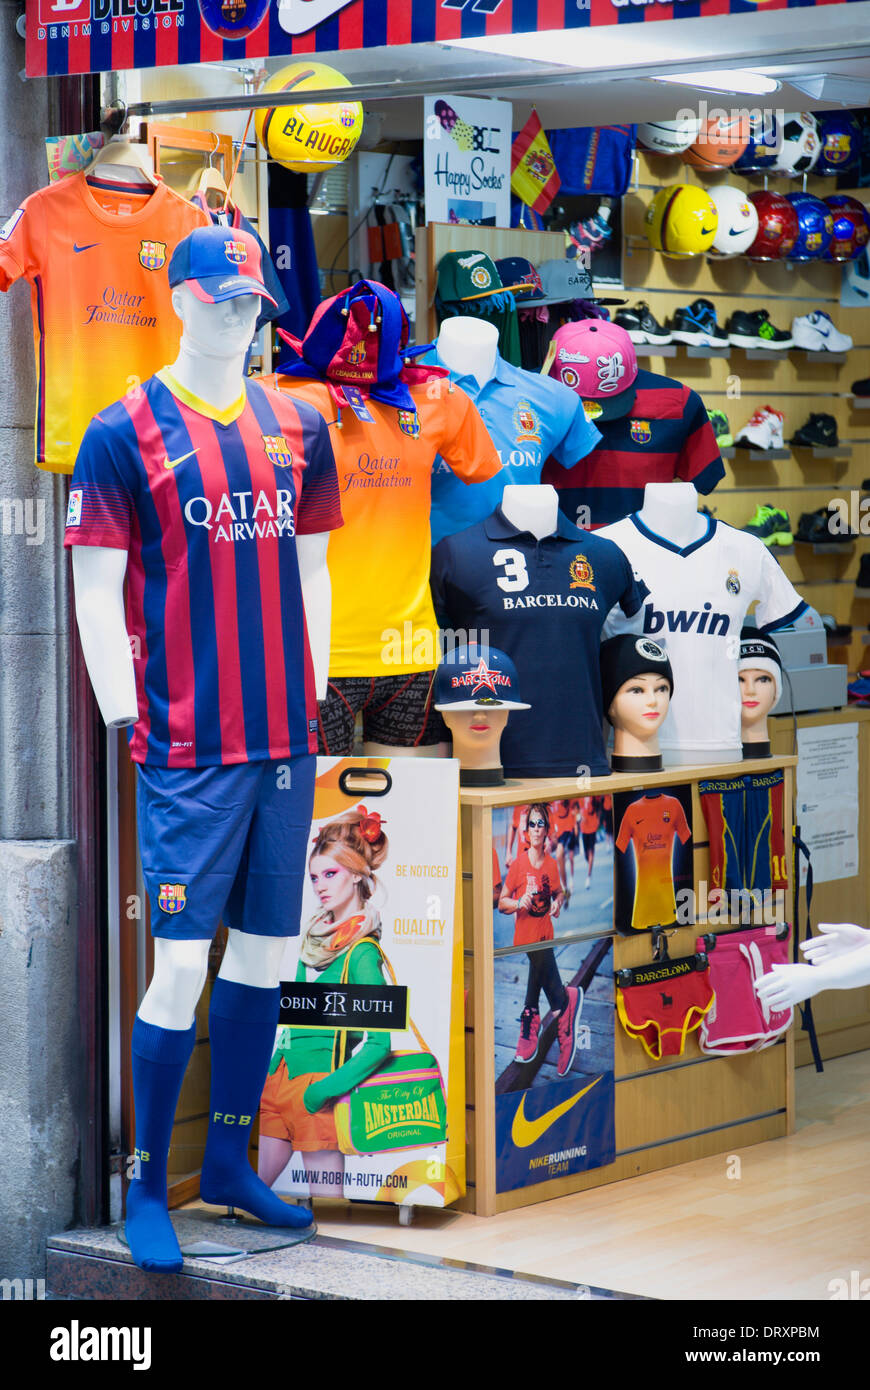 bc43422df55a3b Spain, Catalonia, Barcelona, Sports goods shop in the Gothic Quarter with  display of Barcelona Football Club clothes.